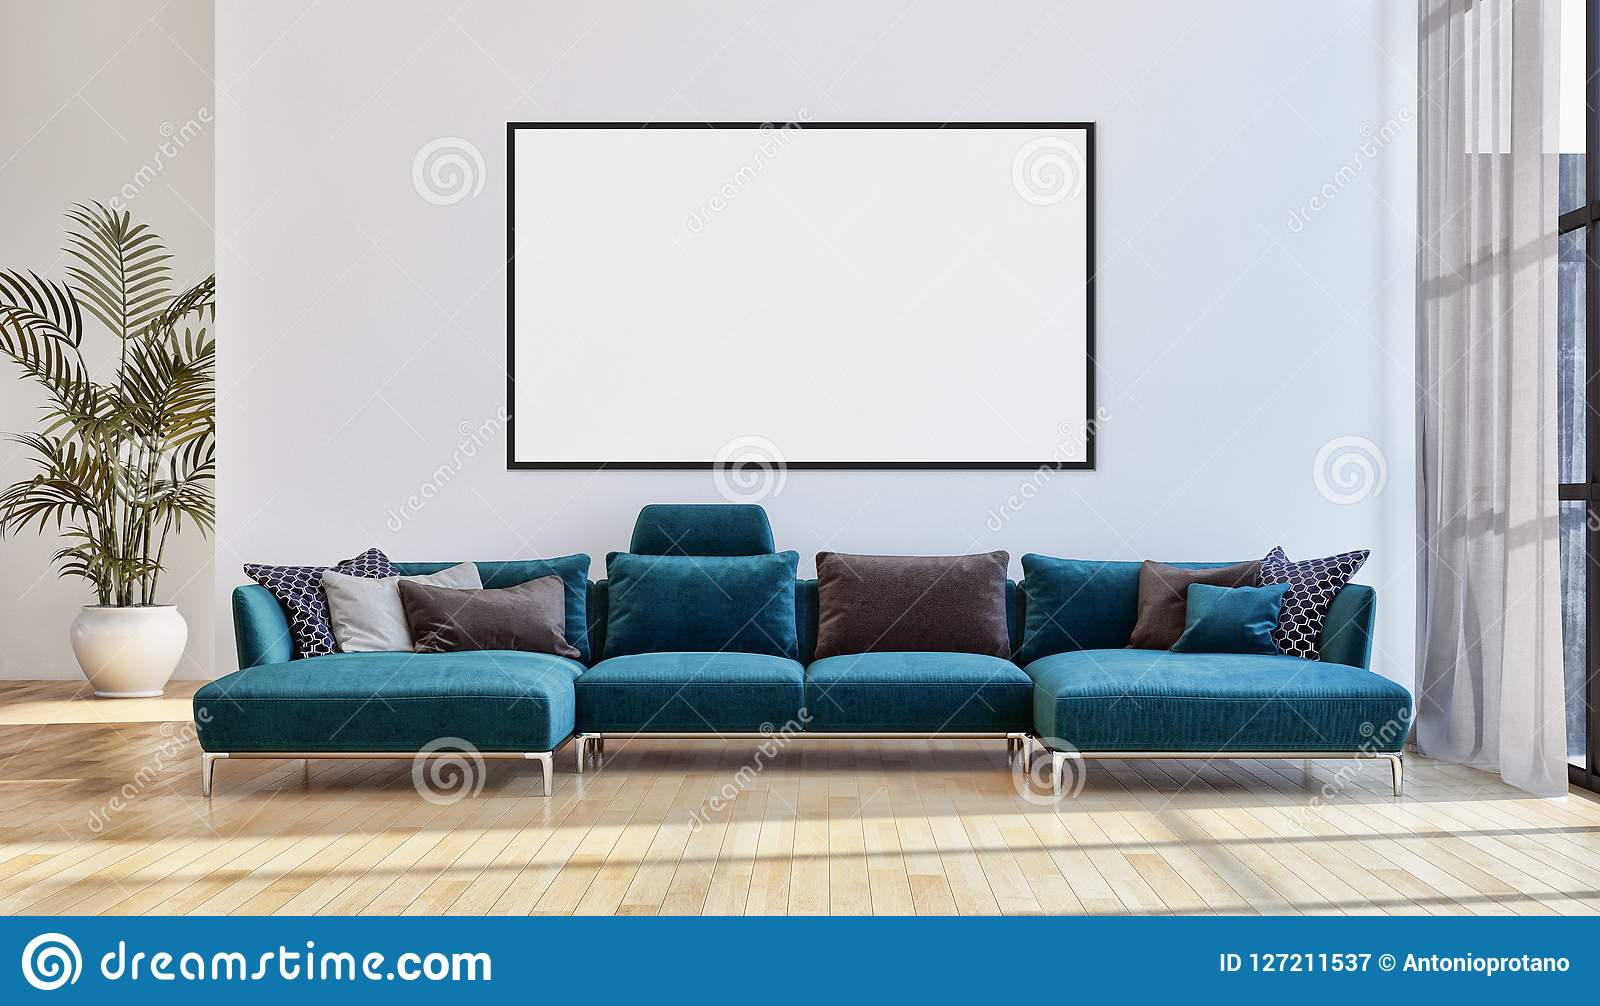 Modern Bright Interiors Apartment With Mock Up Poster ...